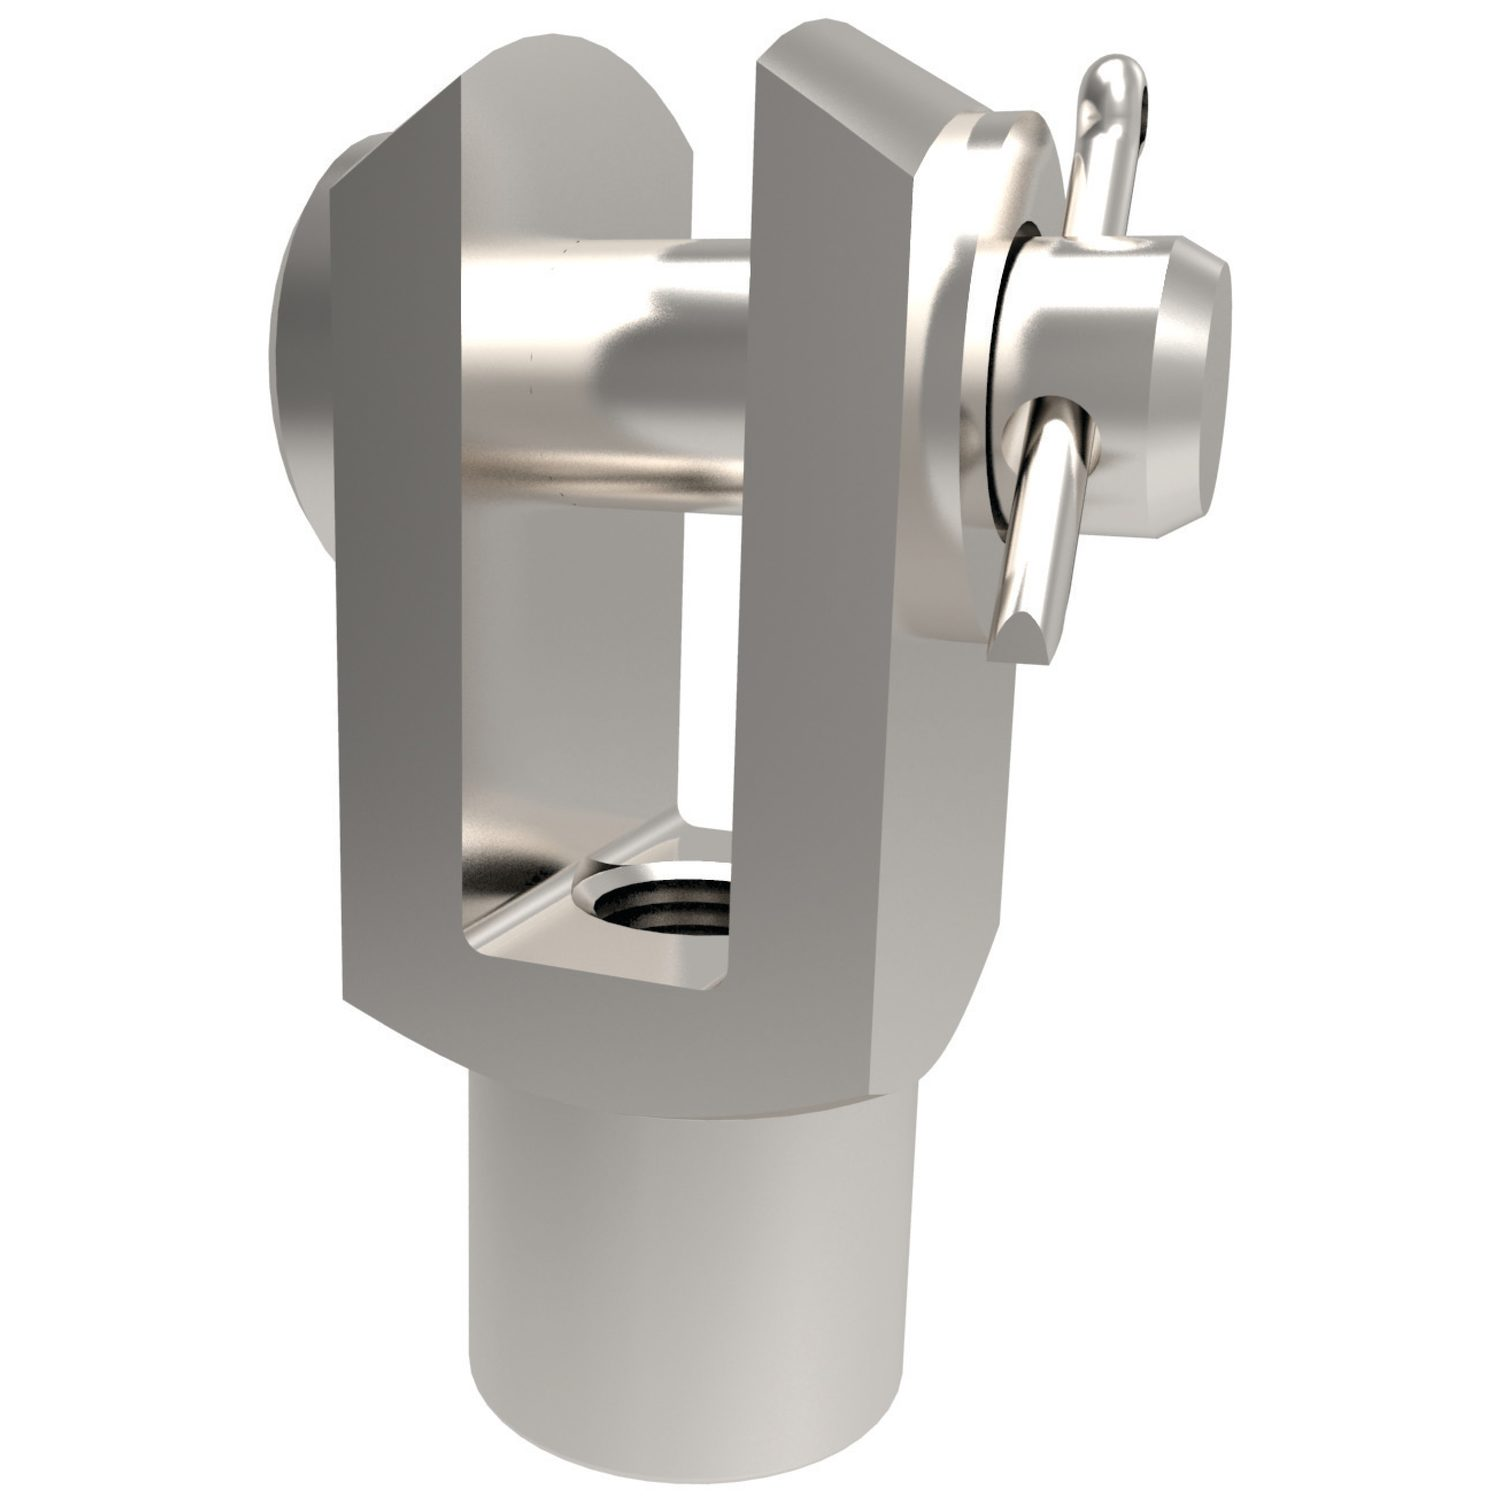 R3405 - Stainless Clevis Joints with Pin